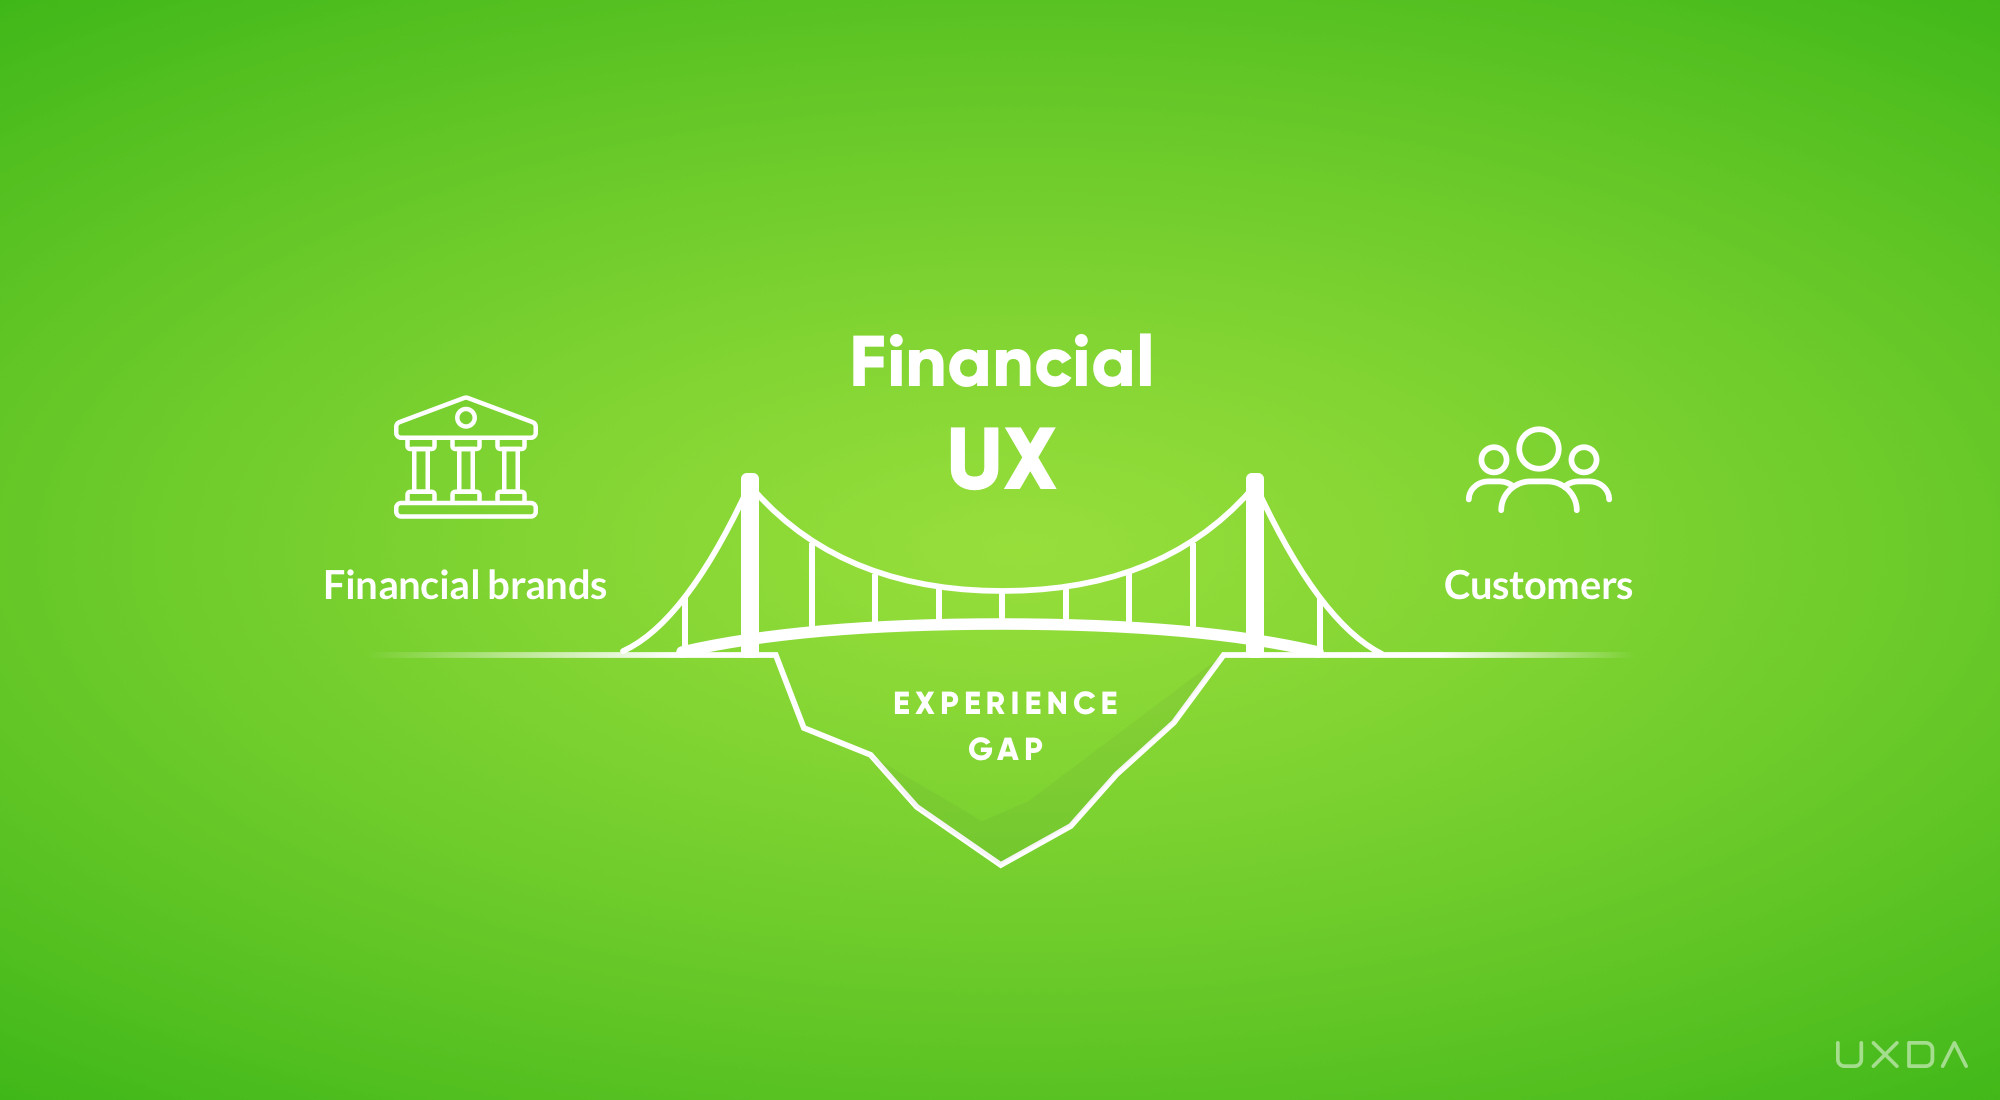 Digital Banking Strategy Relies on UX / CX to Find Market Need